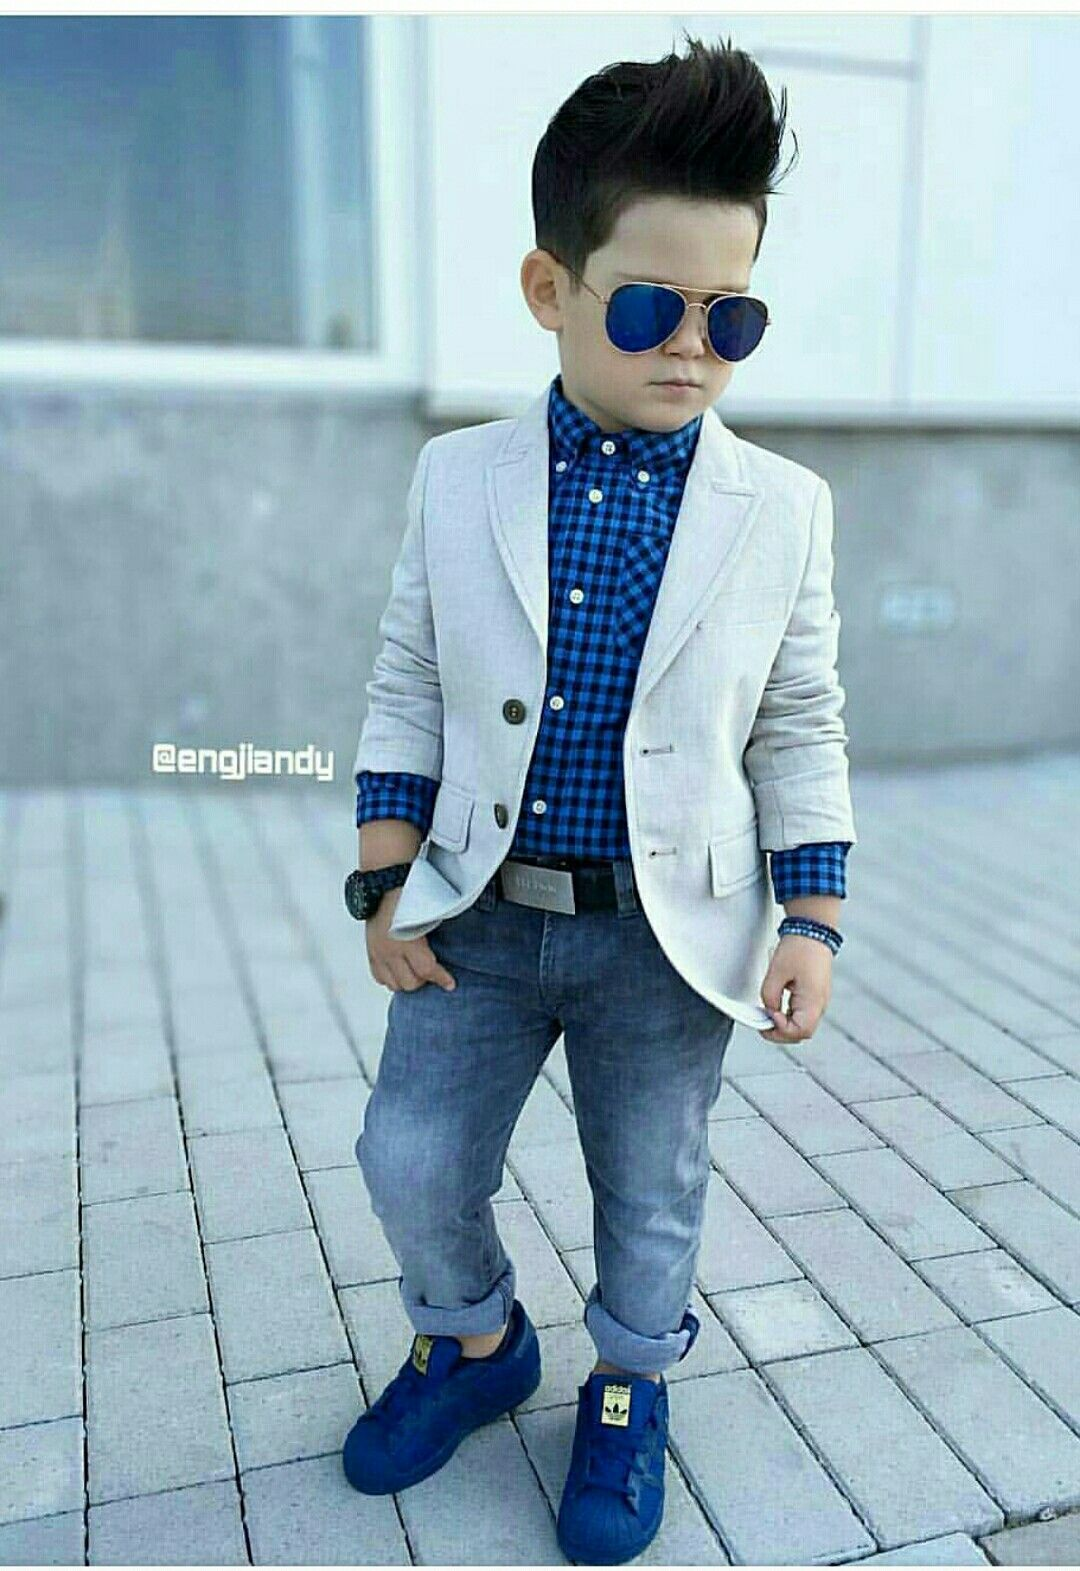 0a89a9c29 Boys New Fashion, Toddler Fashion, Girl Fashion, Fashion Dresses, Toddler  Girl Style